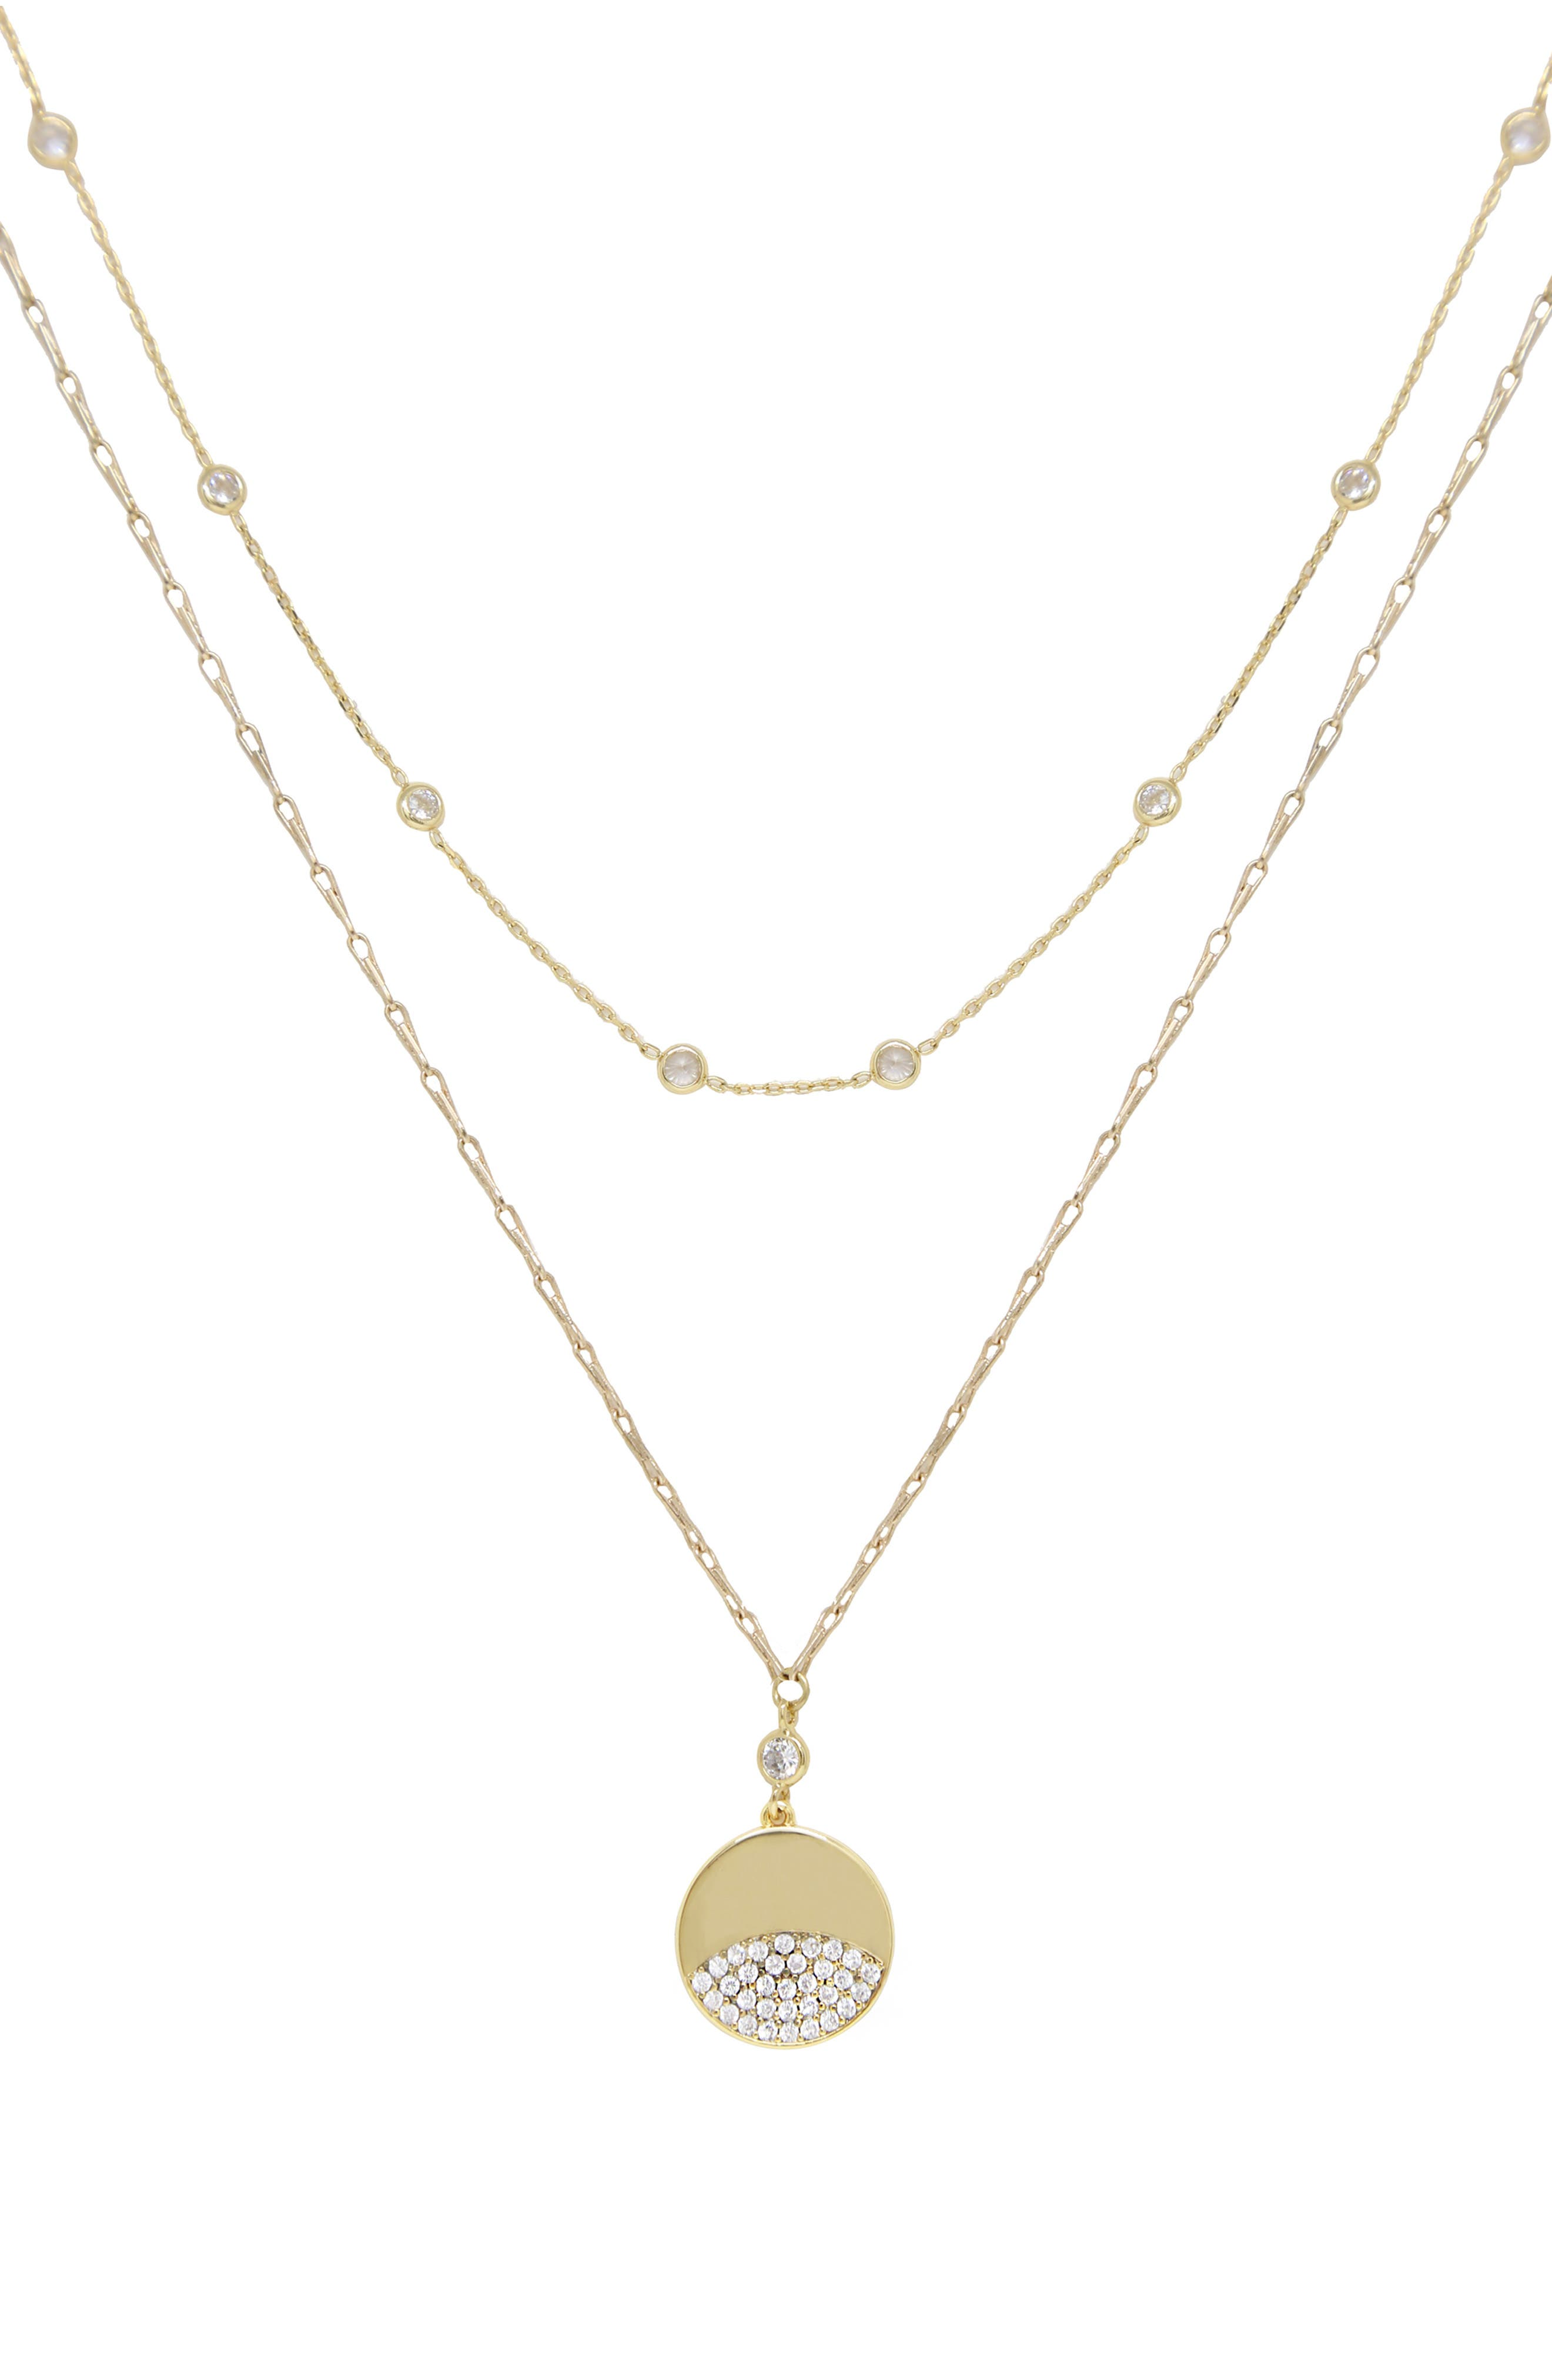 14K Gold Filled Toggle Clasp Pendant Small Crystal Charm Rectangular CZ Stone Toggle Necklace Layered Necklace Set Square Cz Diamond